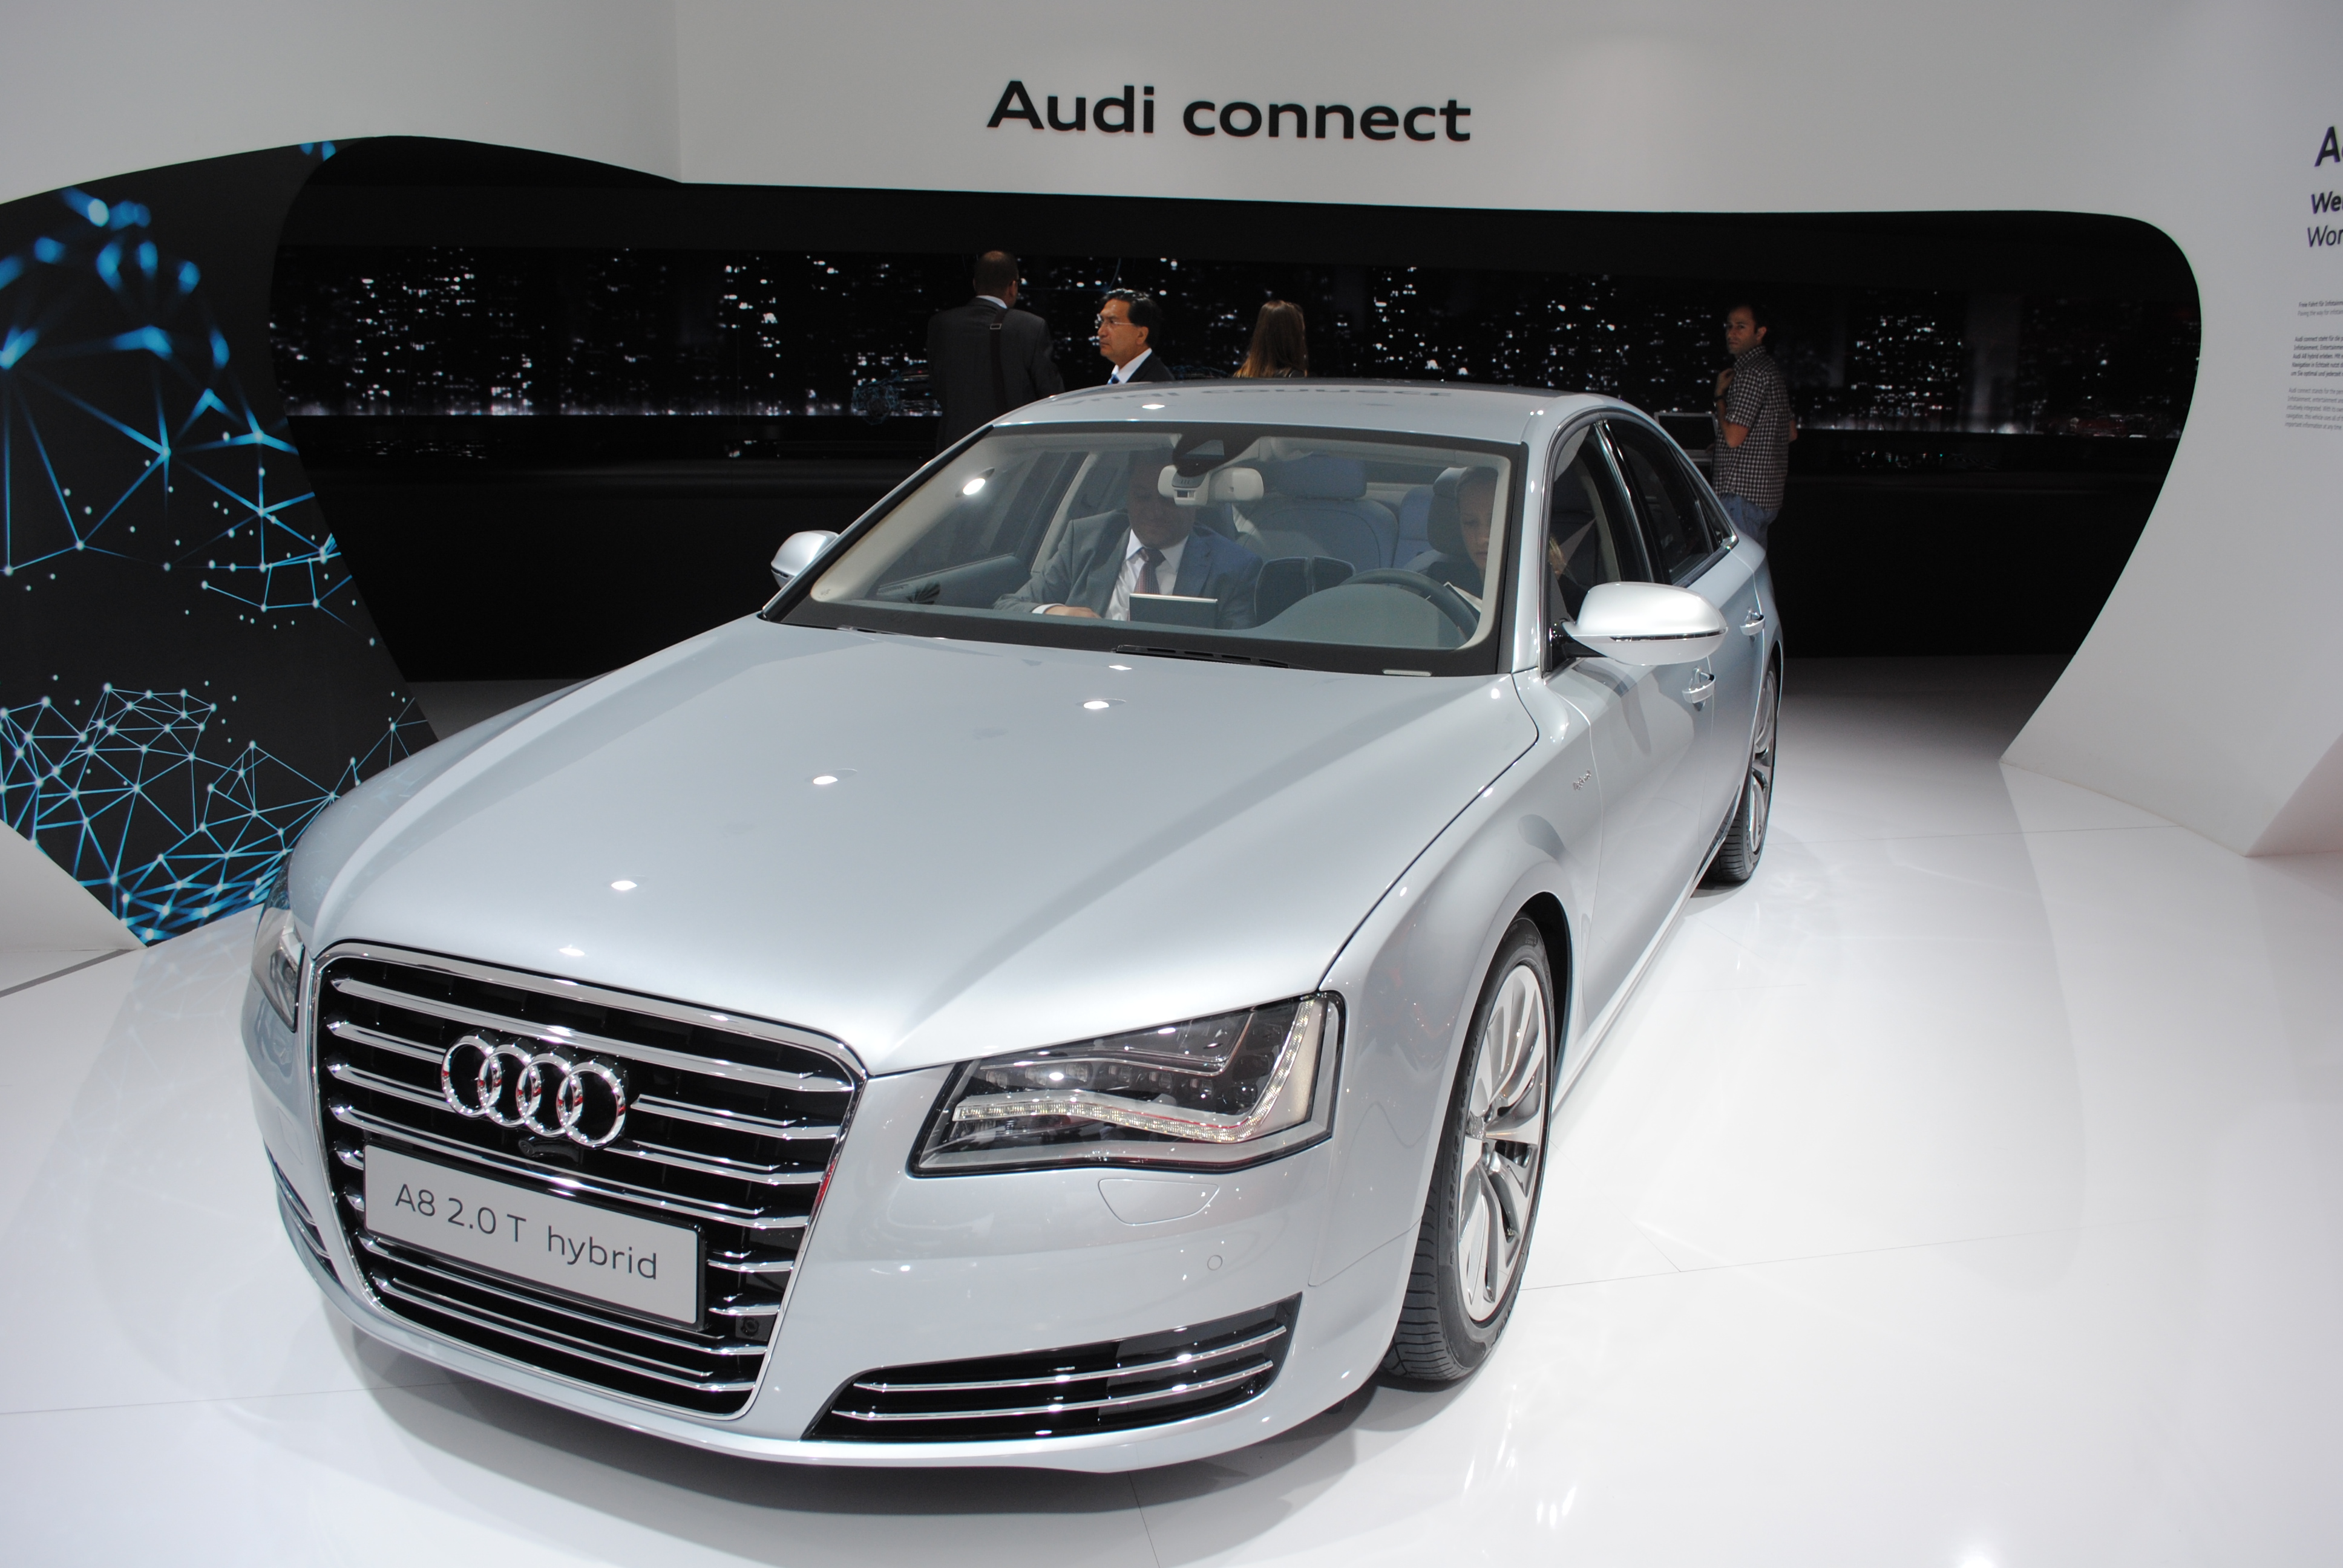 cincinnati for oh special audi htm sale website in dealership the new connection